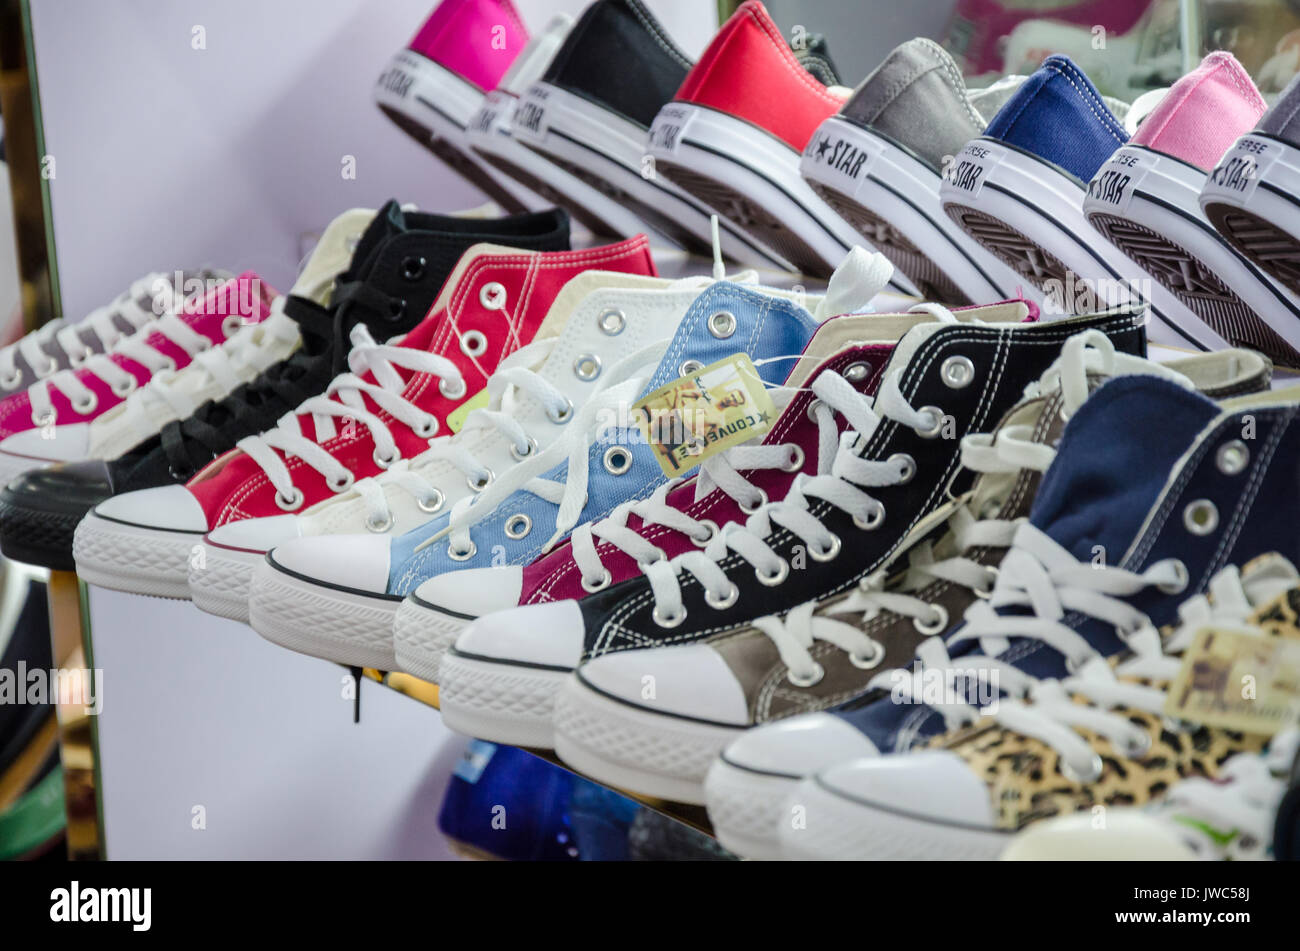 11182861c767 Converse shoes on display for sale in a shoe shop Stock Photo ...